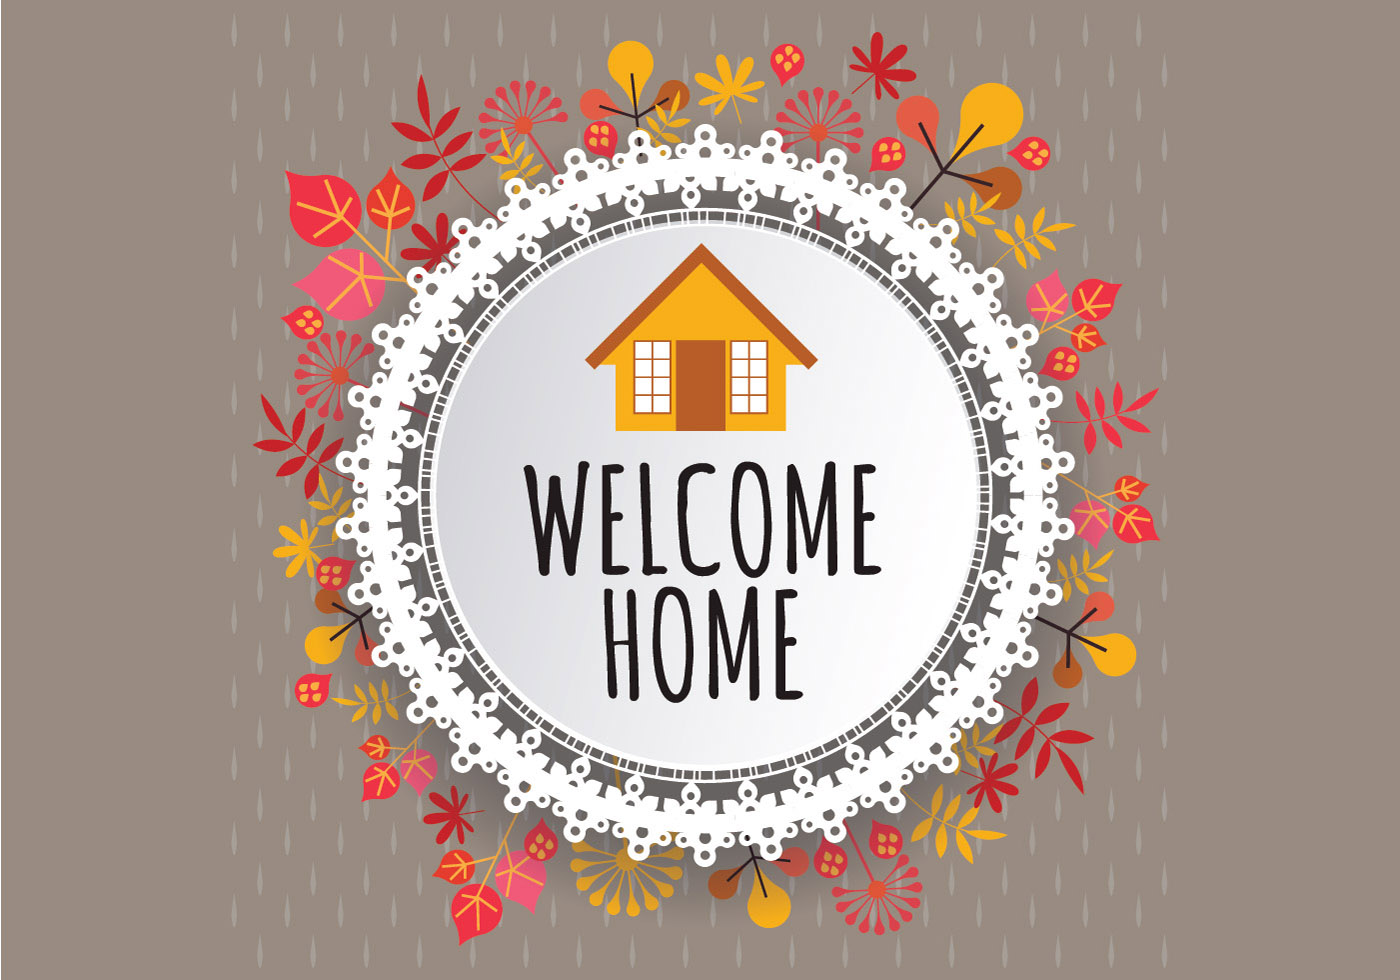 Welcome Home Sign Free Vector Art - (14703 Free Downloads)